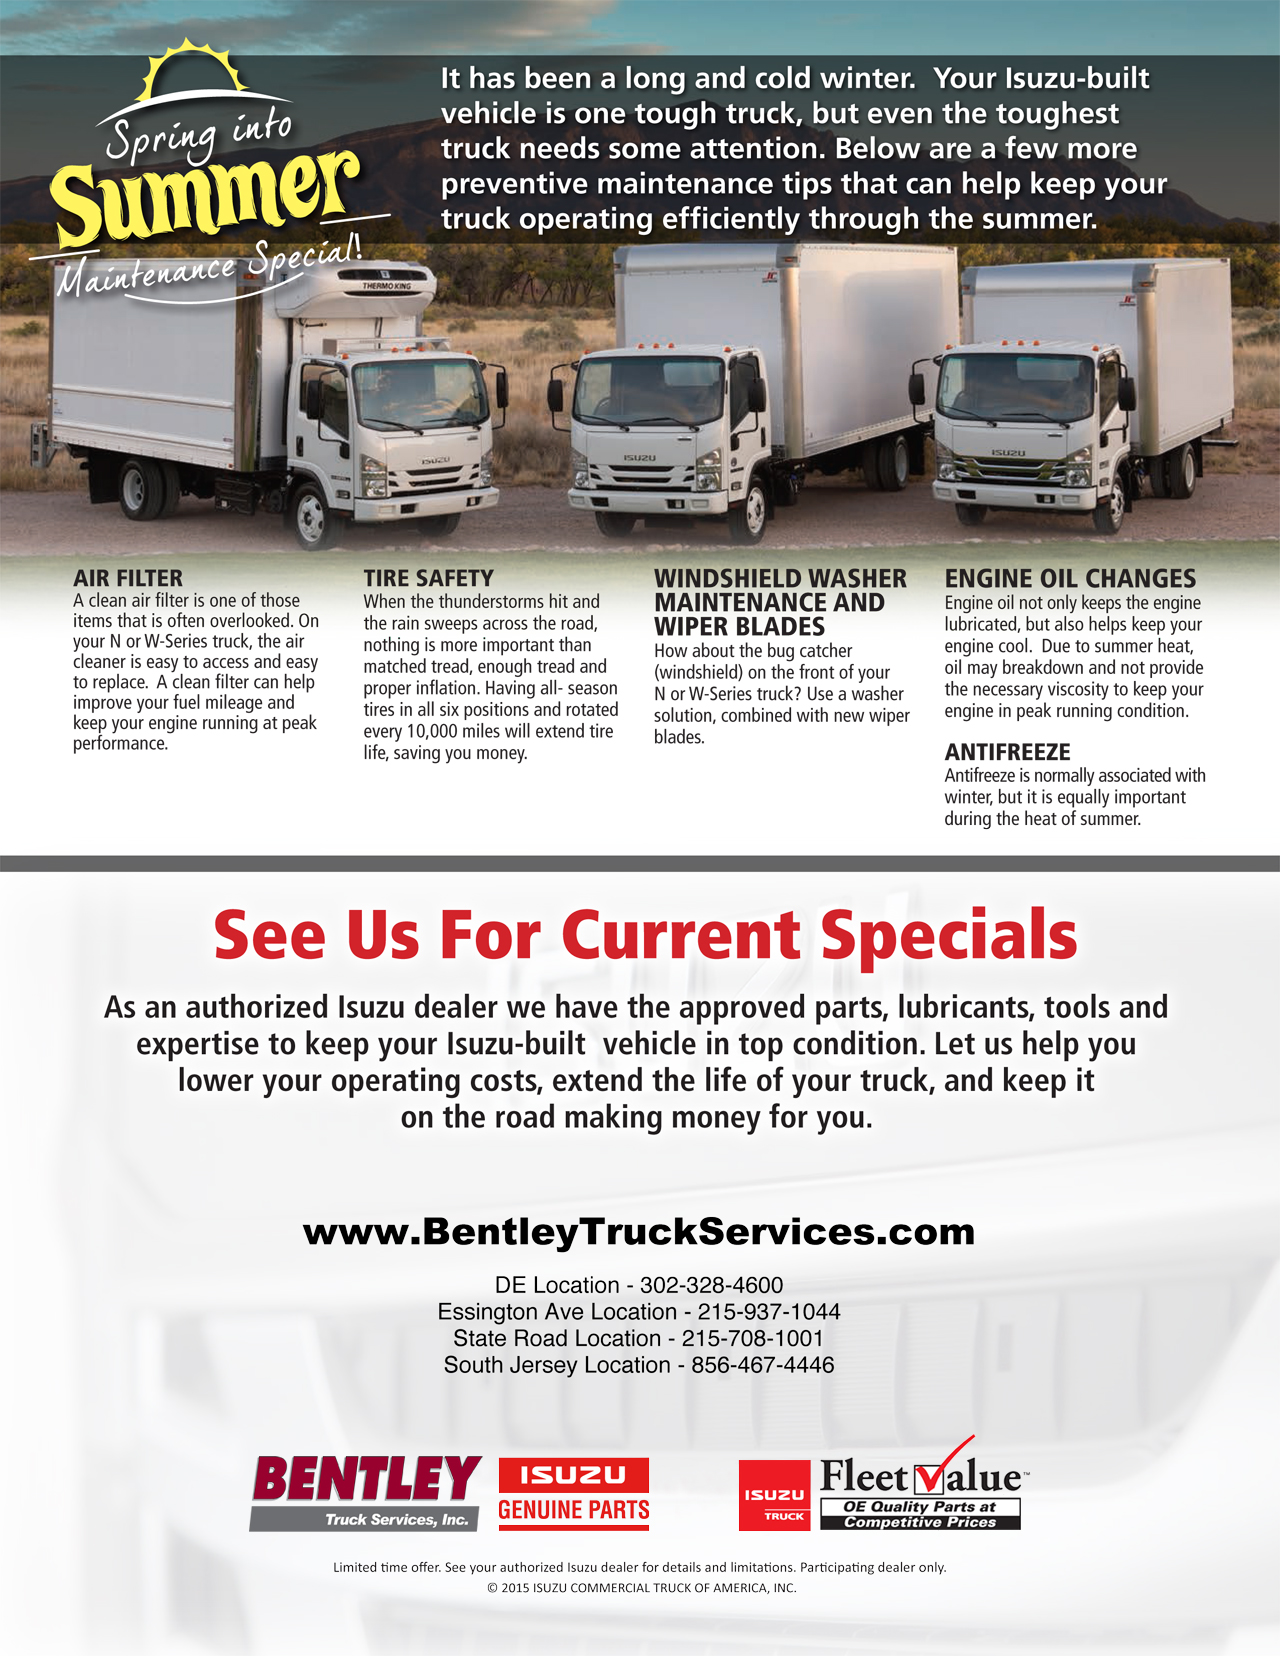 Huge Savings On Commercial Truck Parts And Service For Your Isuzu Truck